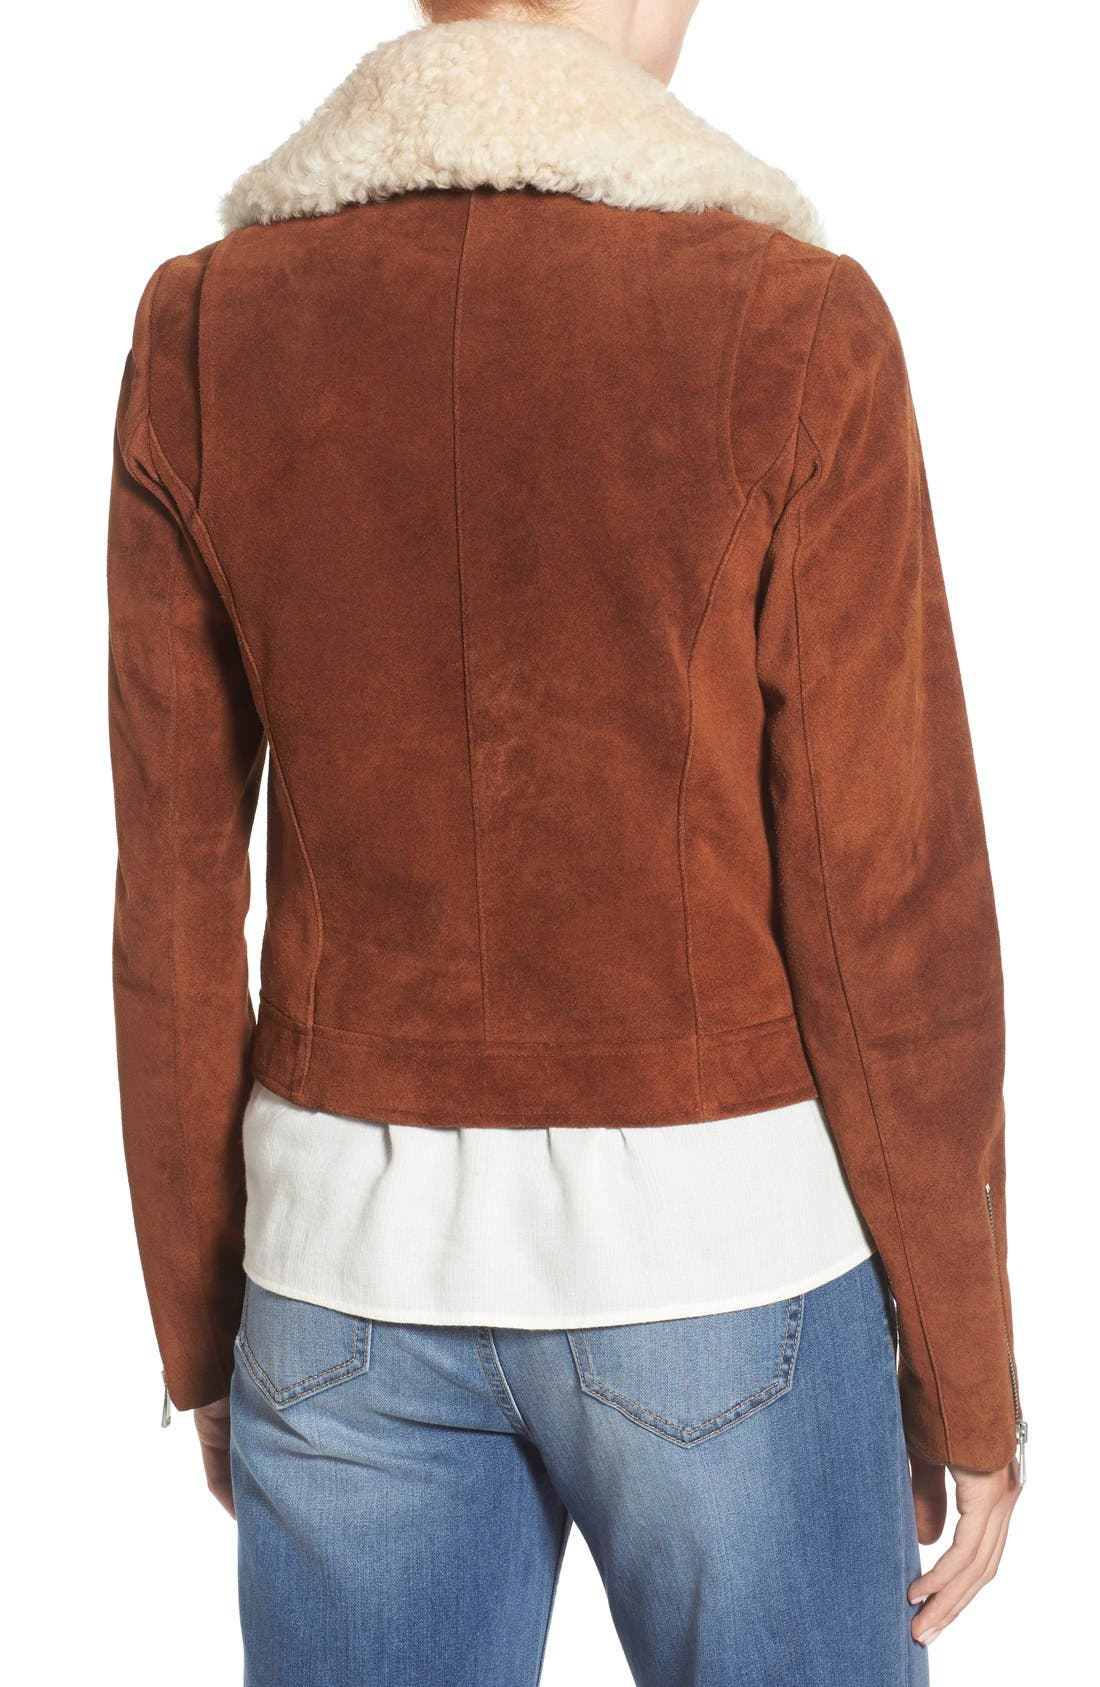 Alternate Image 2  - Andrew Marc Suede Jacket with Genuine Shearling Collar